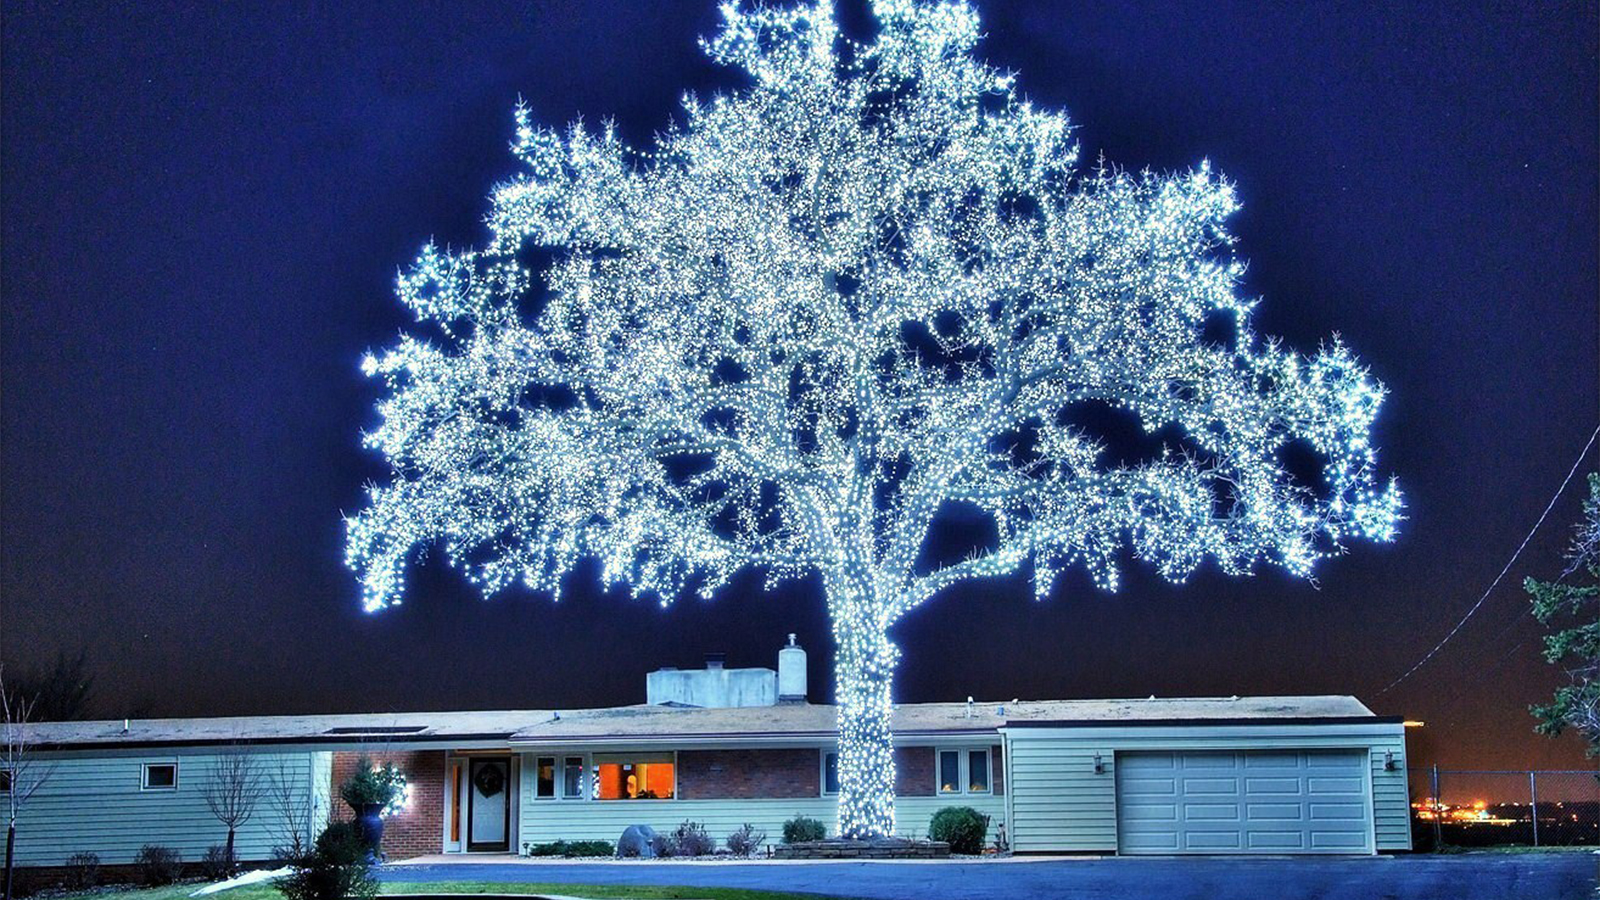 Is This The Most Over-The-Top Christmas Tree Ever?